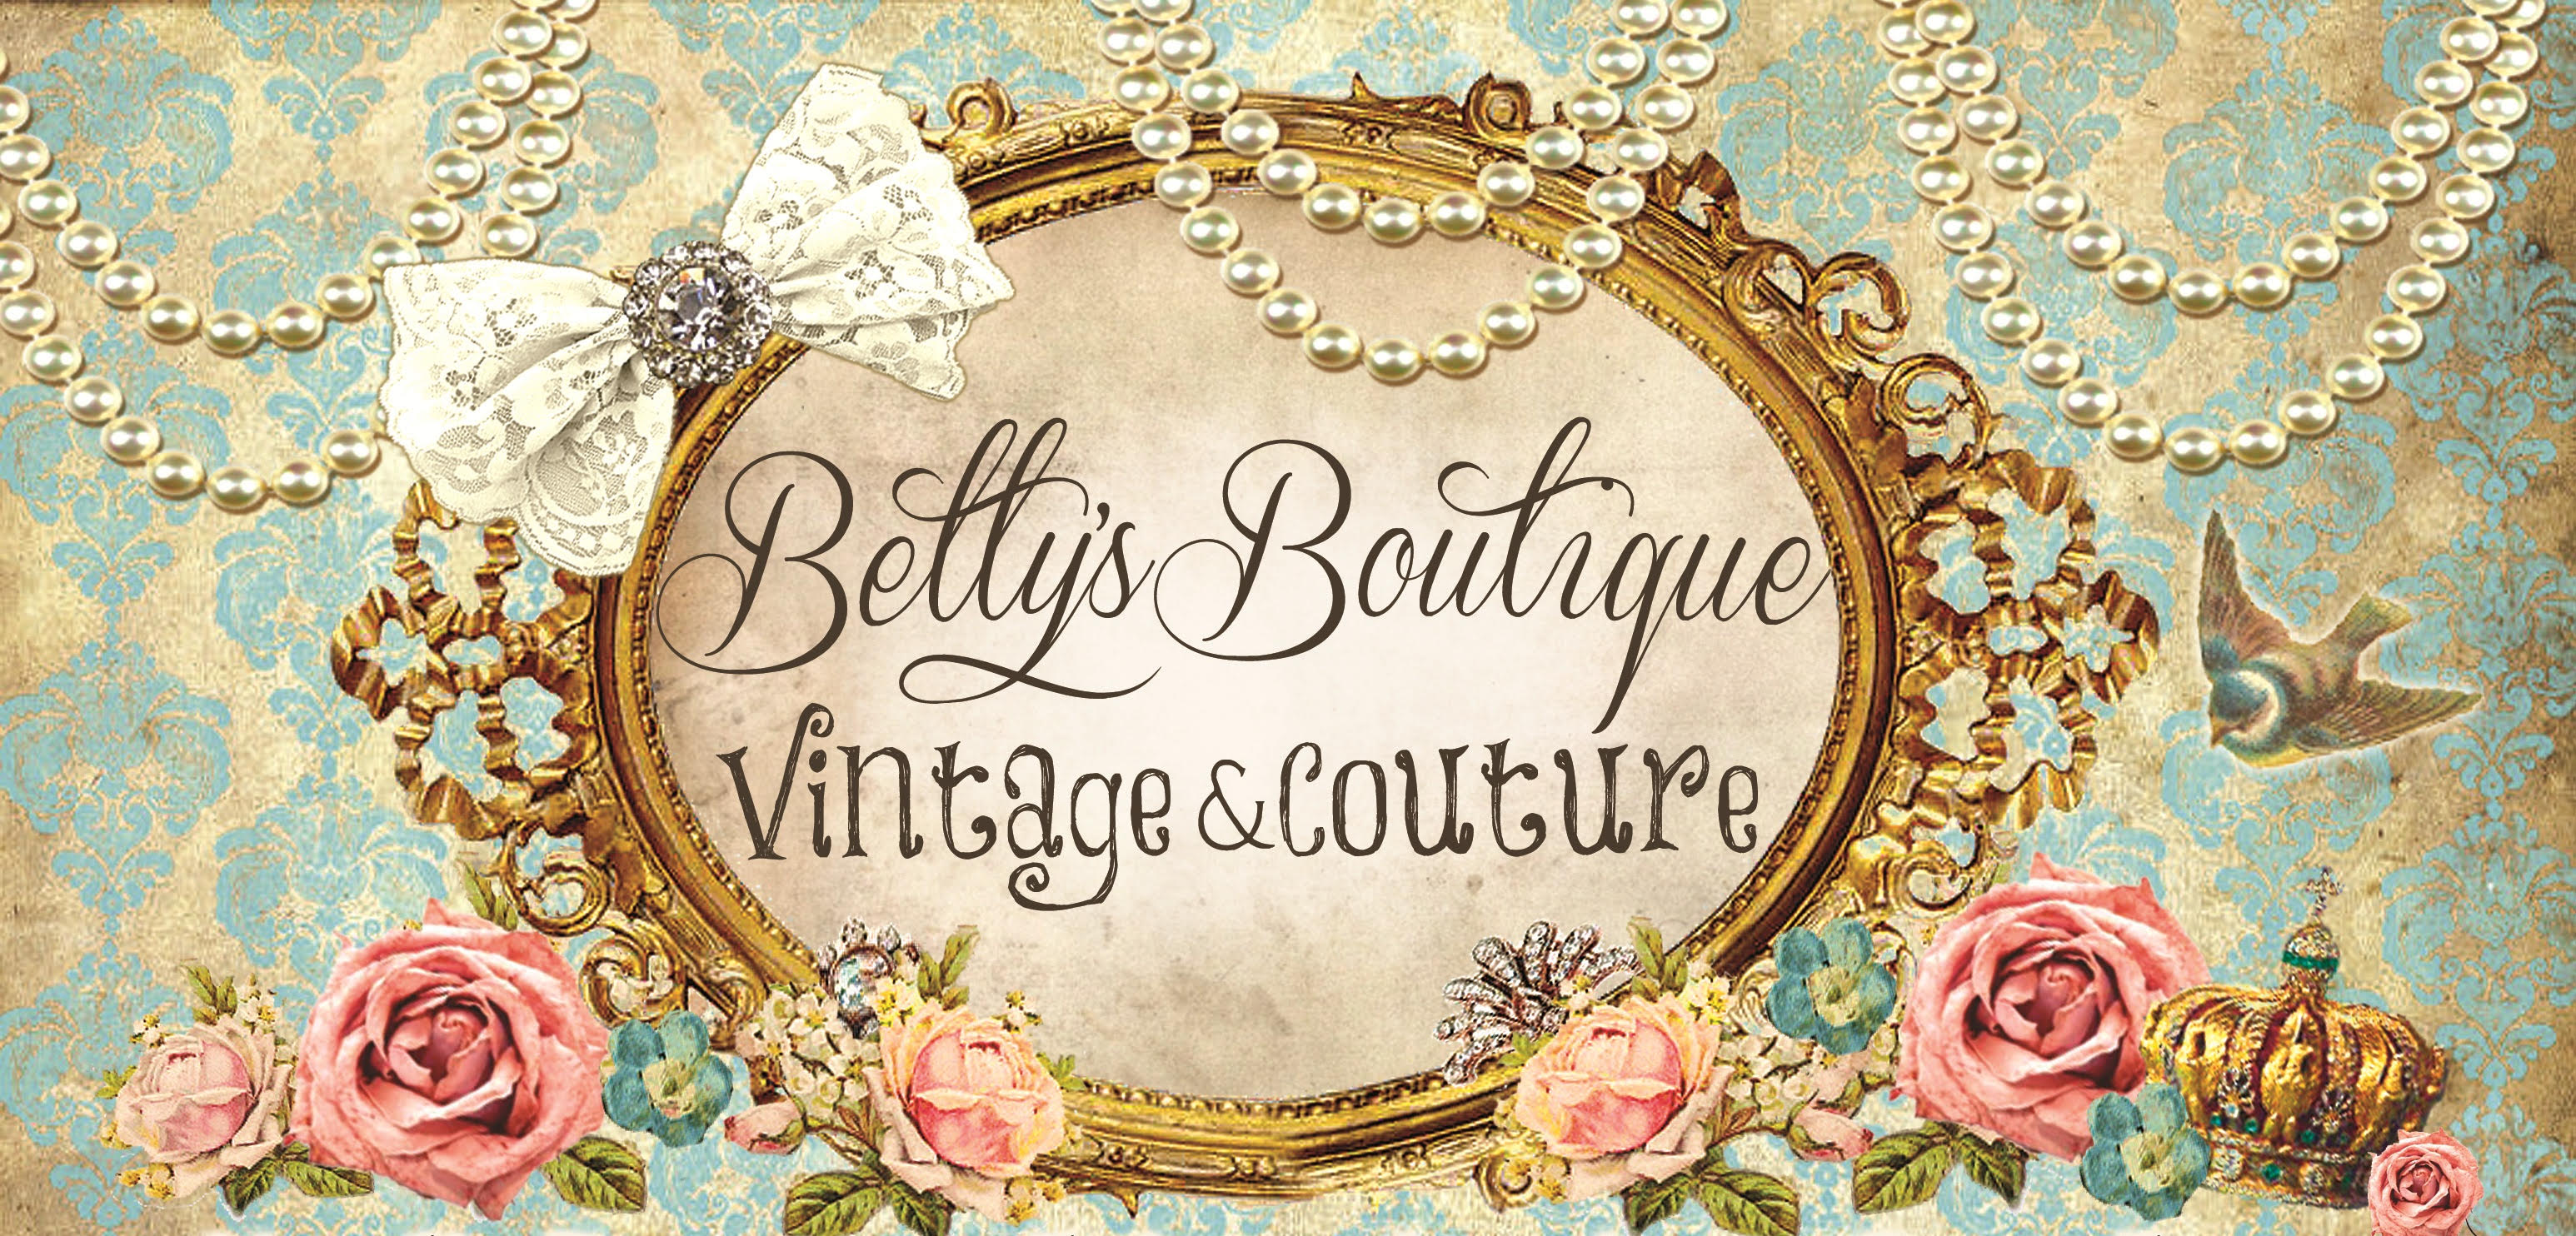 Bettys Boutique logo